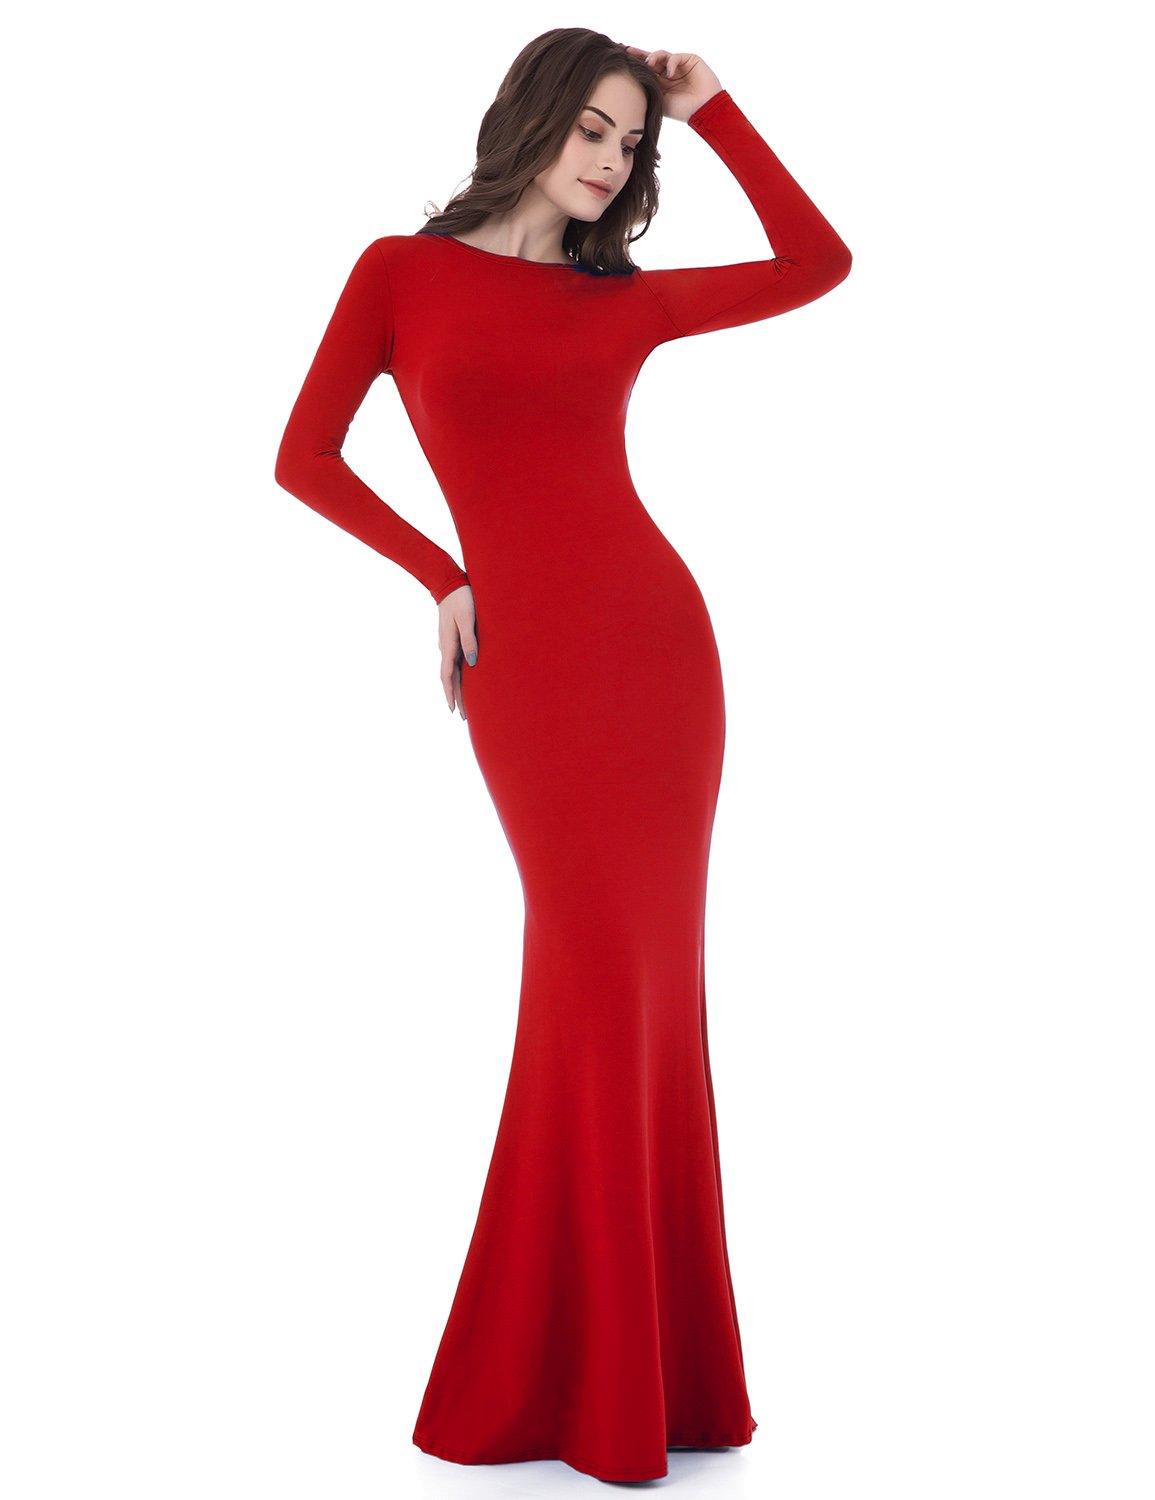 Sarahbridal Women's Mermiad Prom Dresses Long Open Back Evening Party Gowns Red Size M